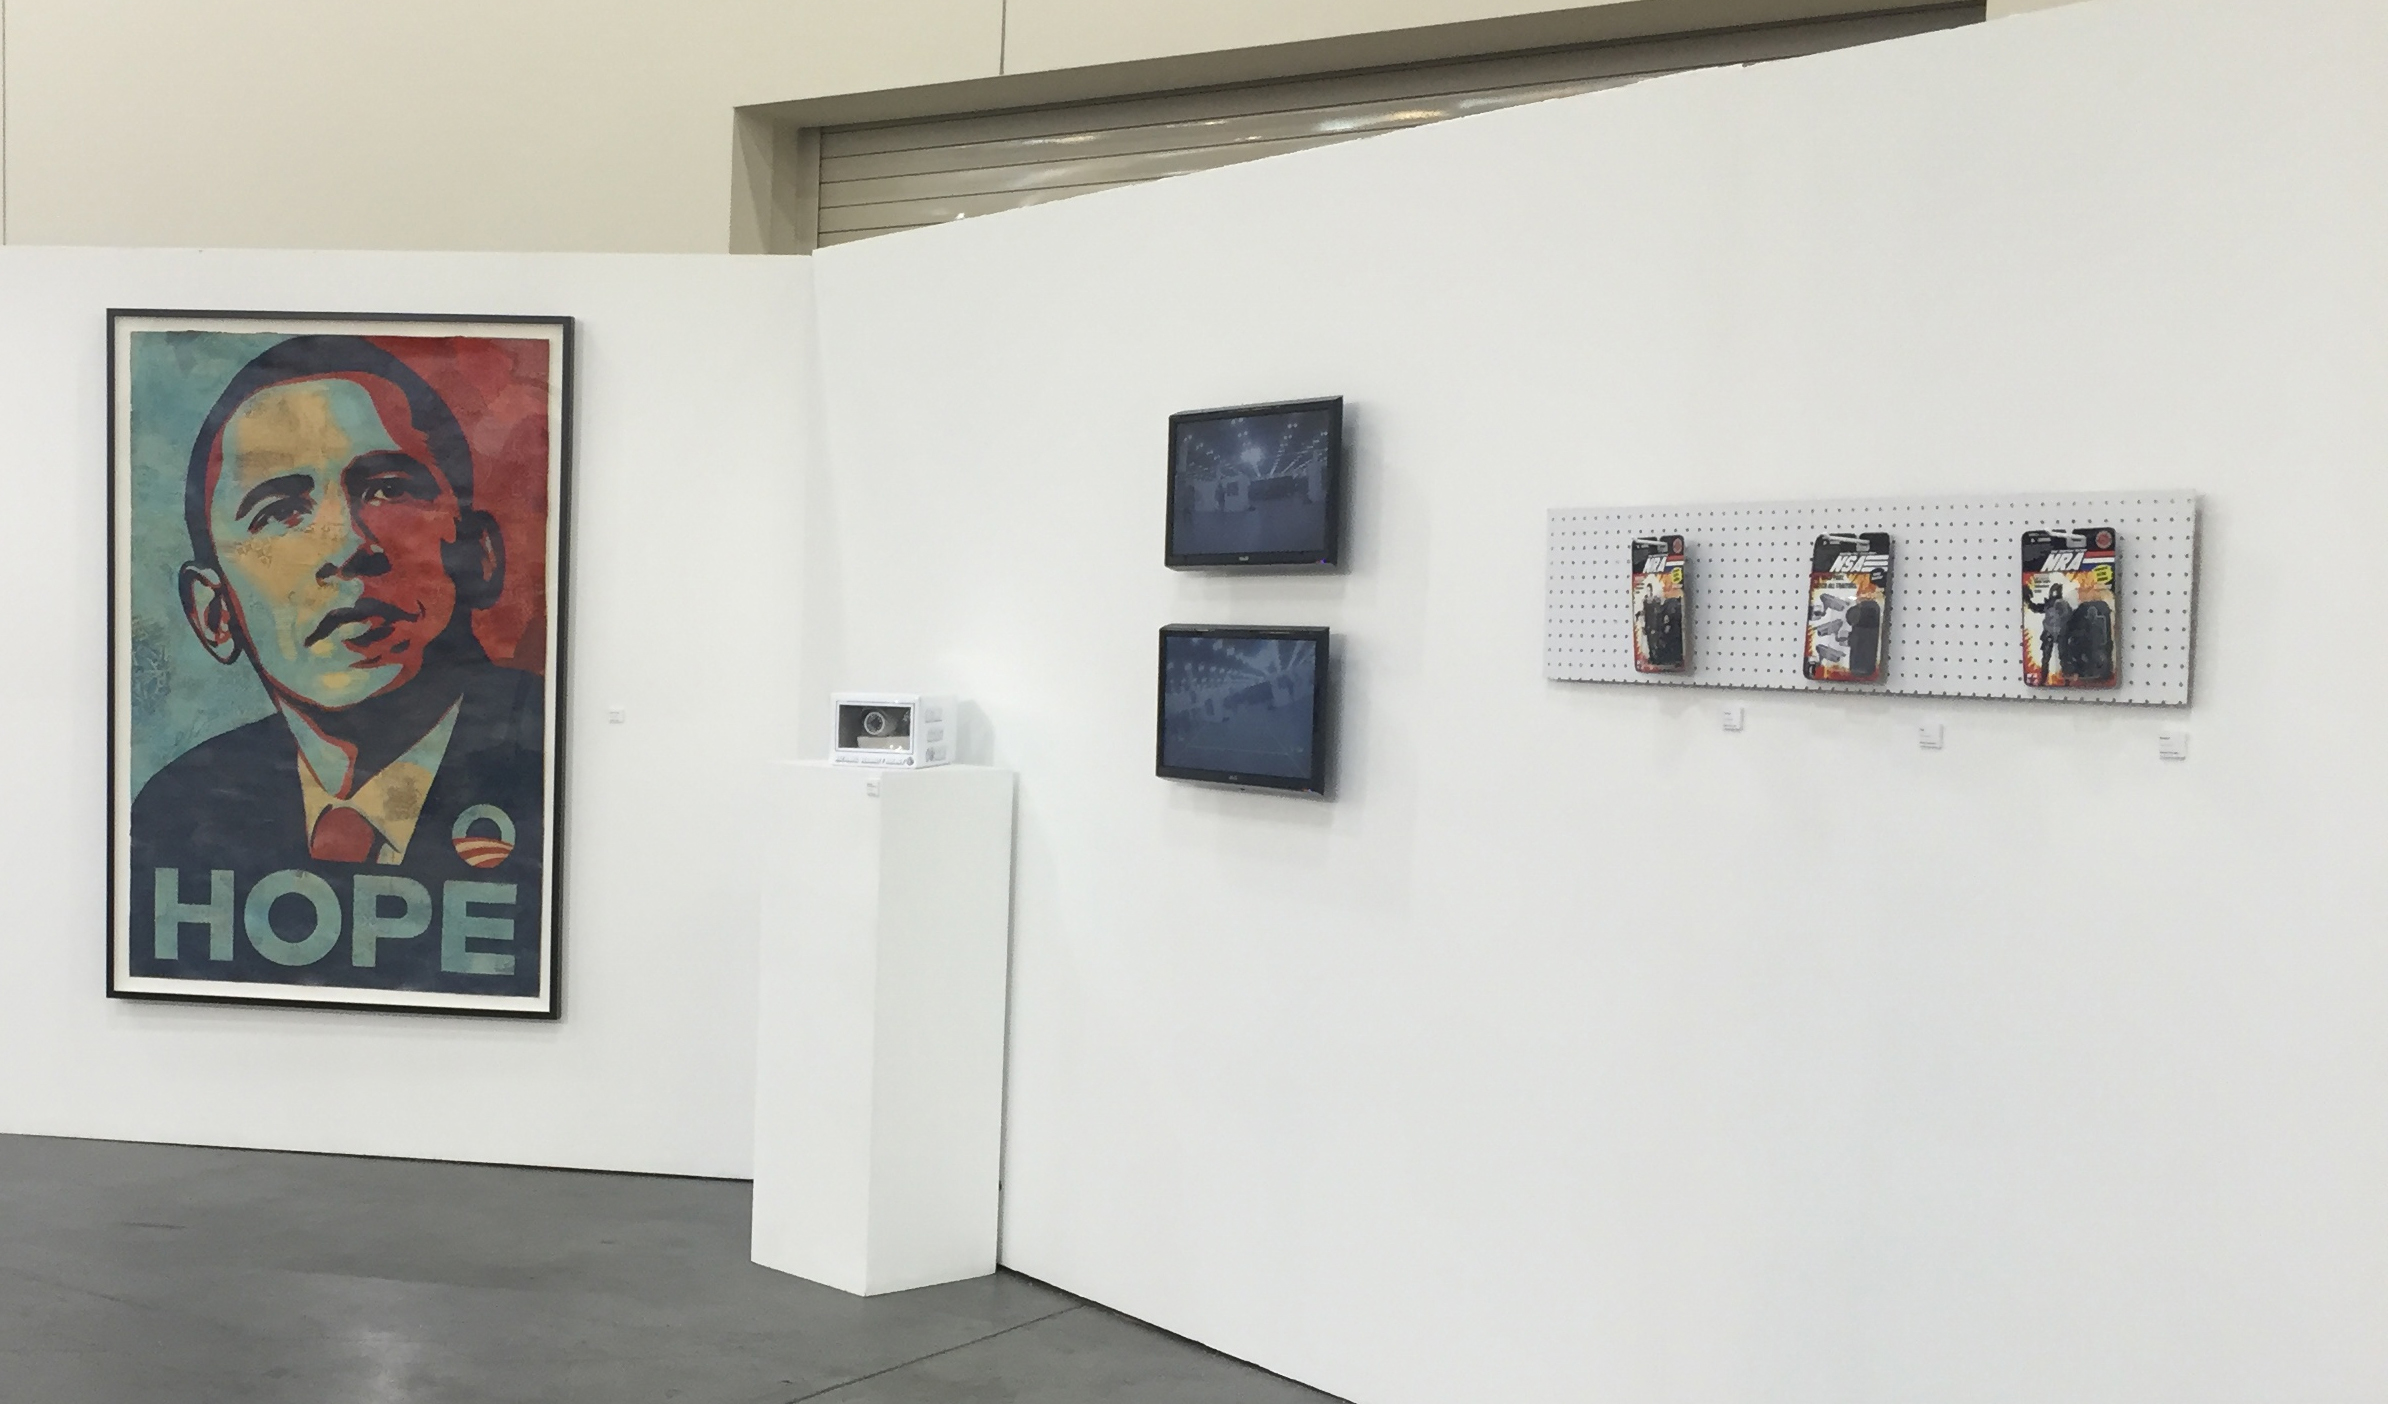 Teacher, Student, and NSA on view in the Art of Politics group show in Pasadena, CA, 2016